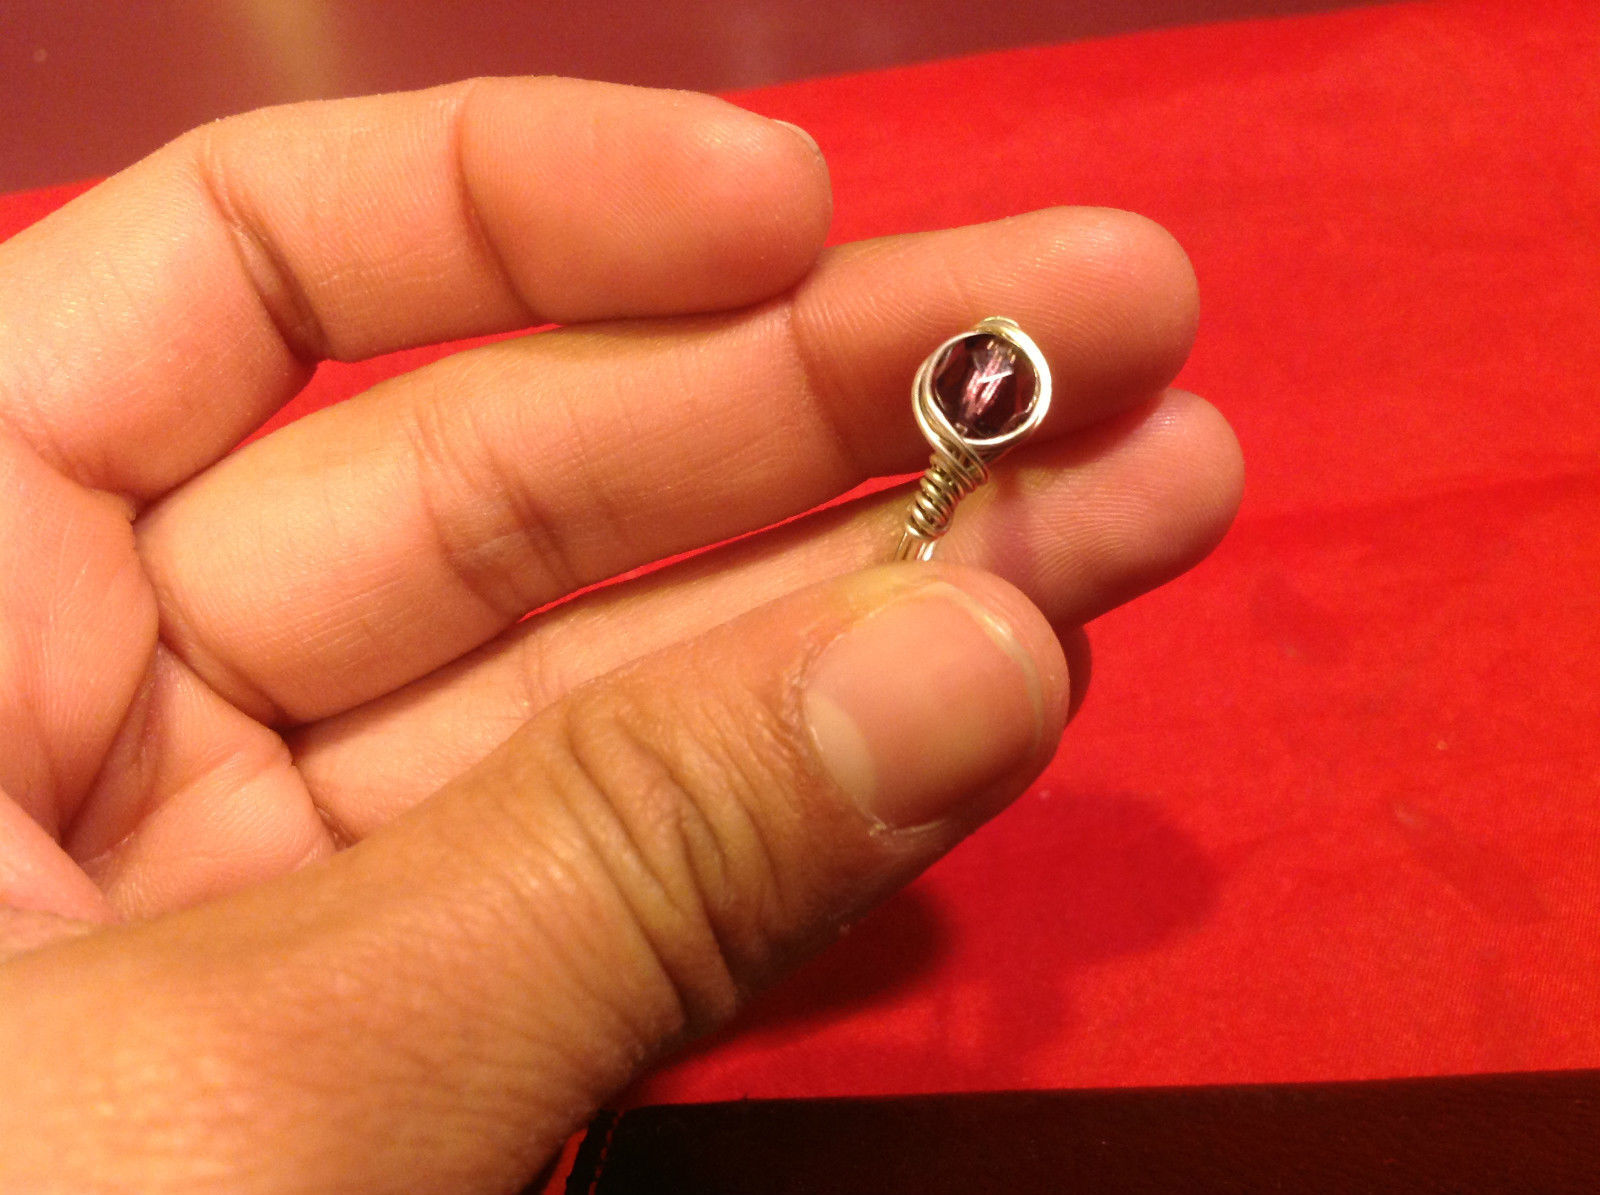 Homemade 7 ring wrap germanium to prevent tarnish Purple Silver